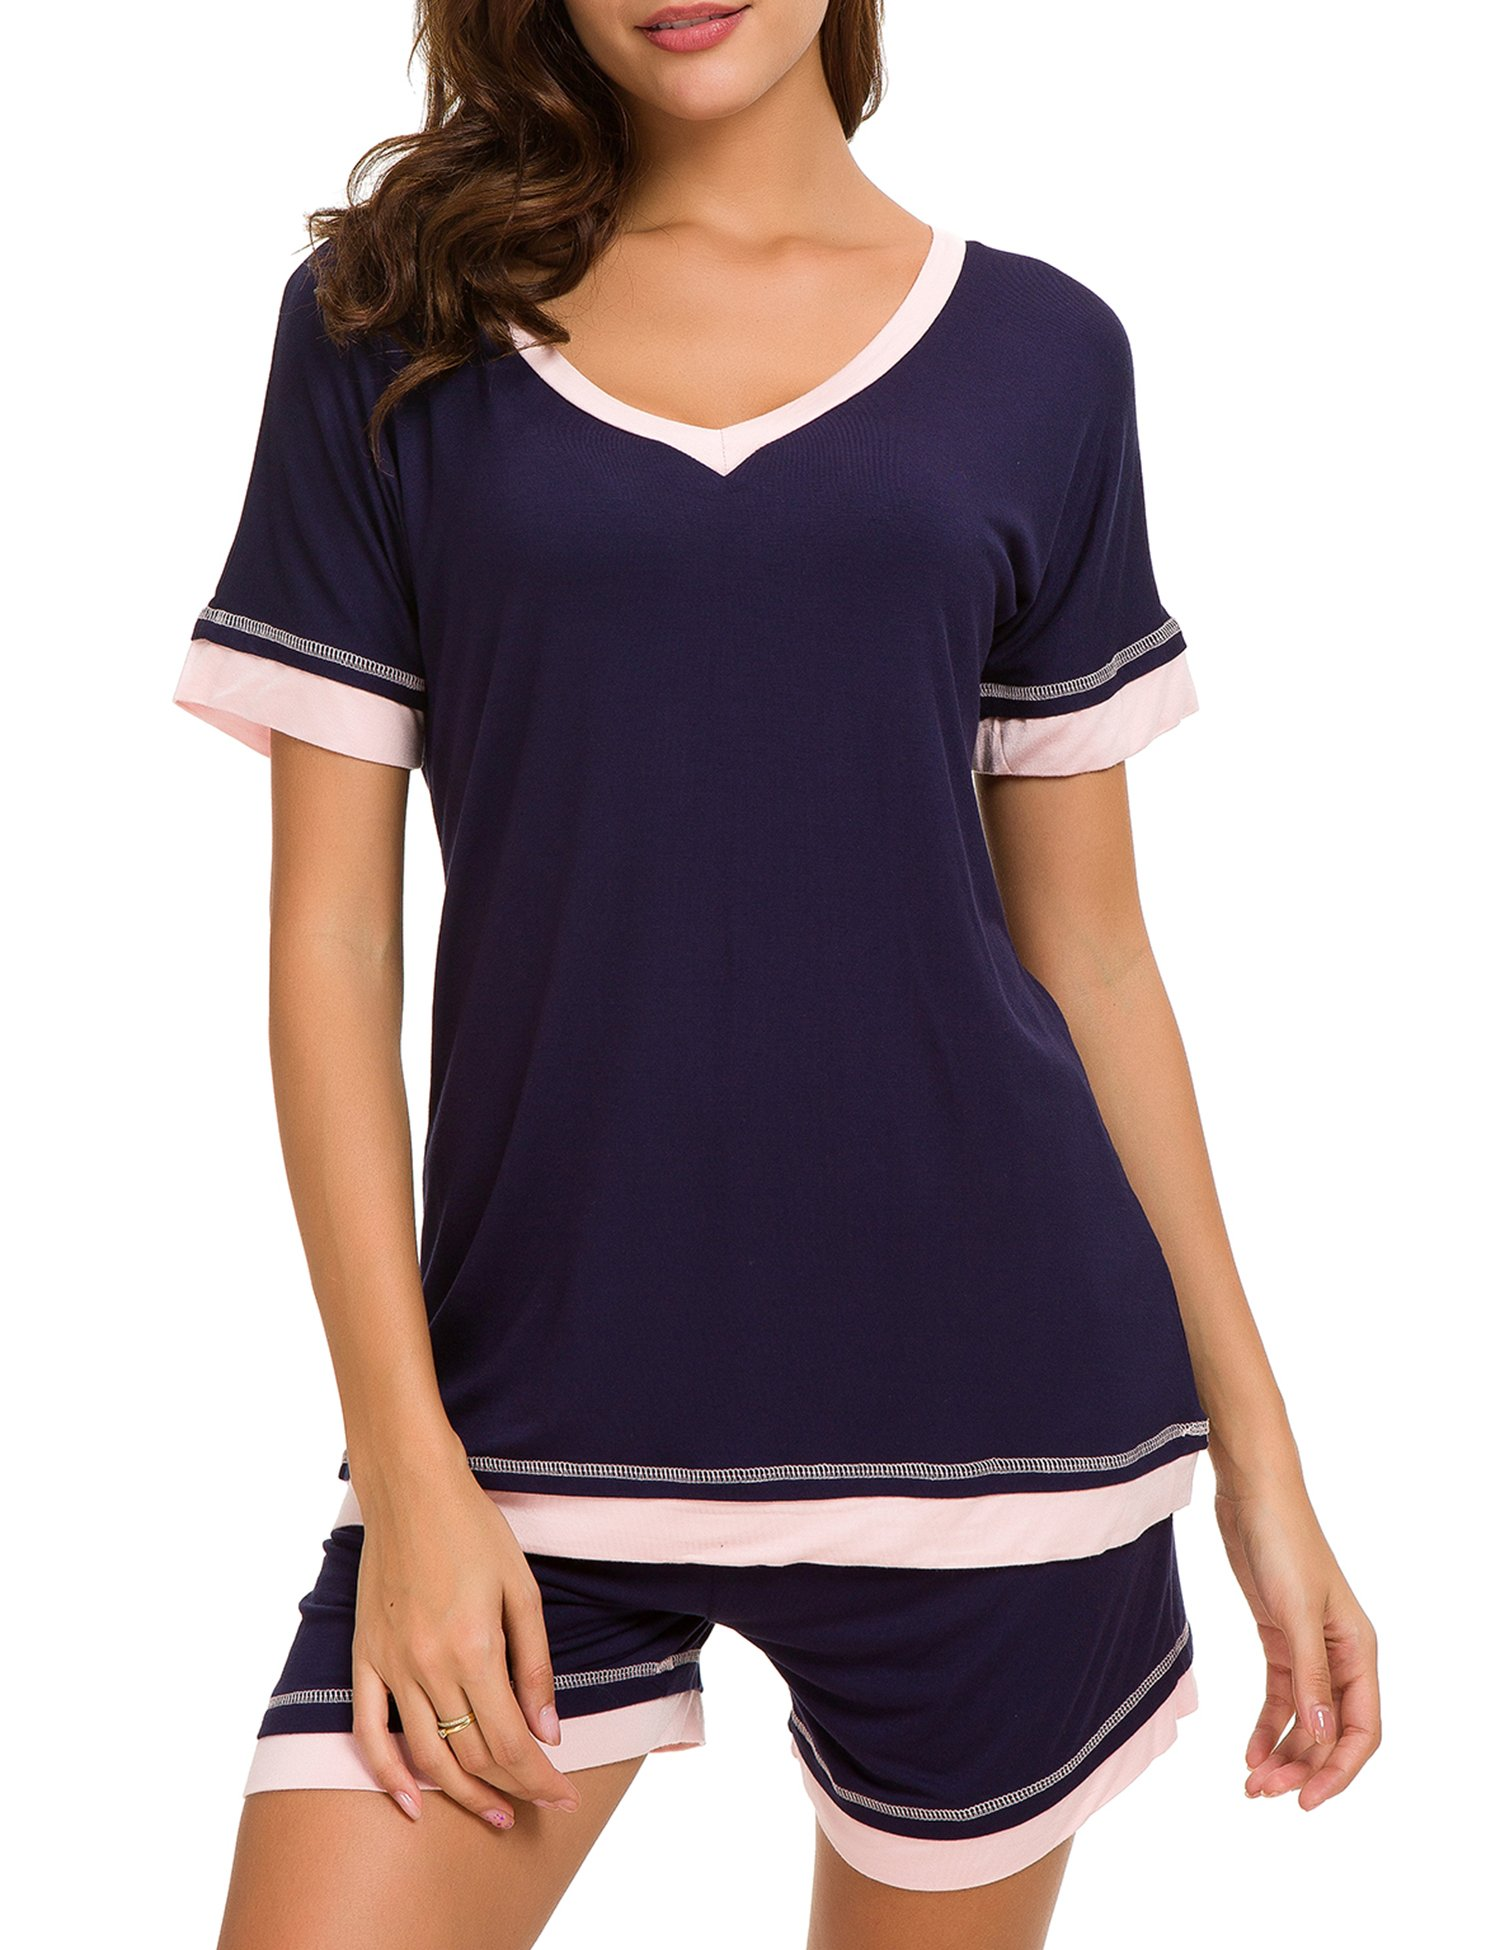 Dolay Pjs Sets Womens Pajama Set Short Sleeve Sleepwear 2-Piece Lounging Wear (Navy, Medium)